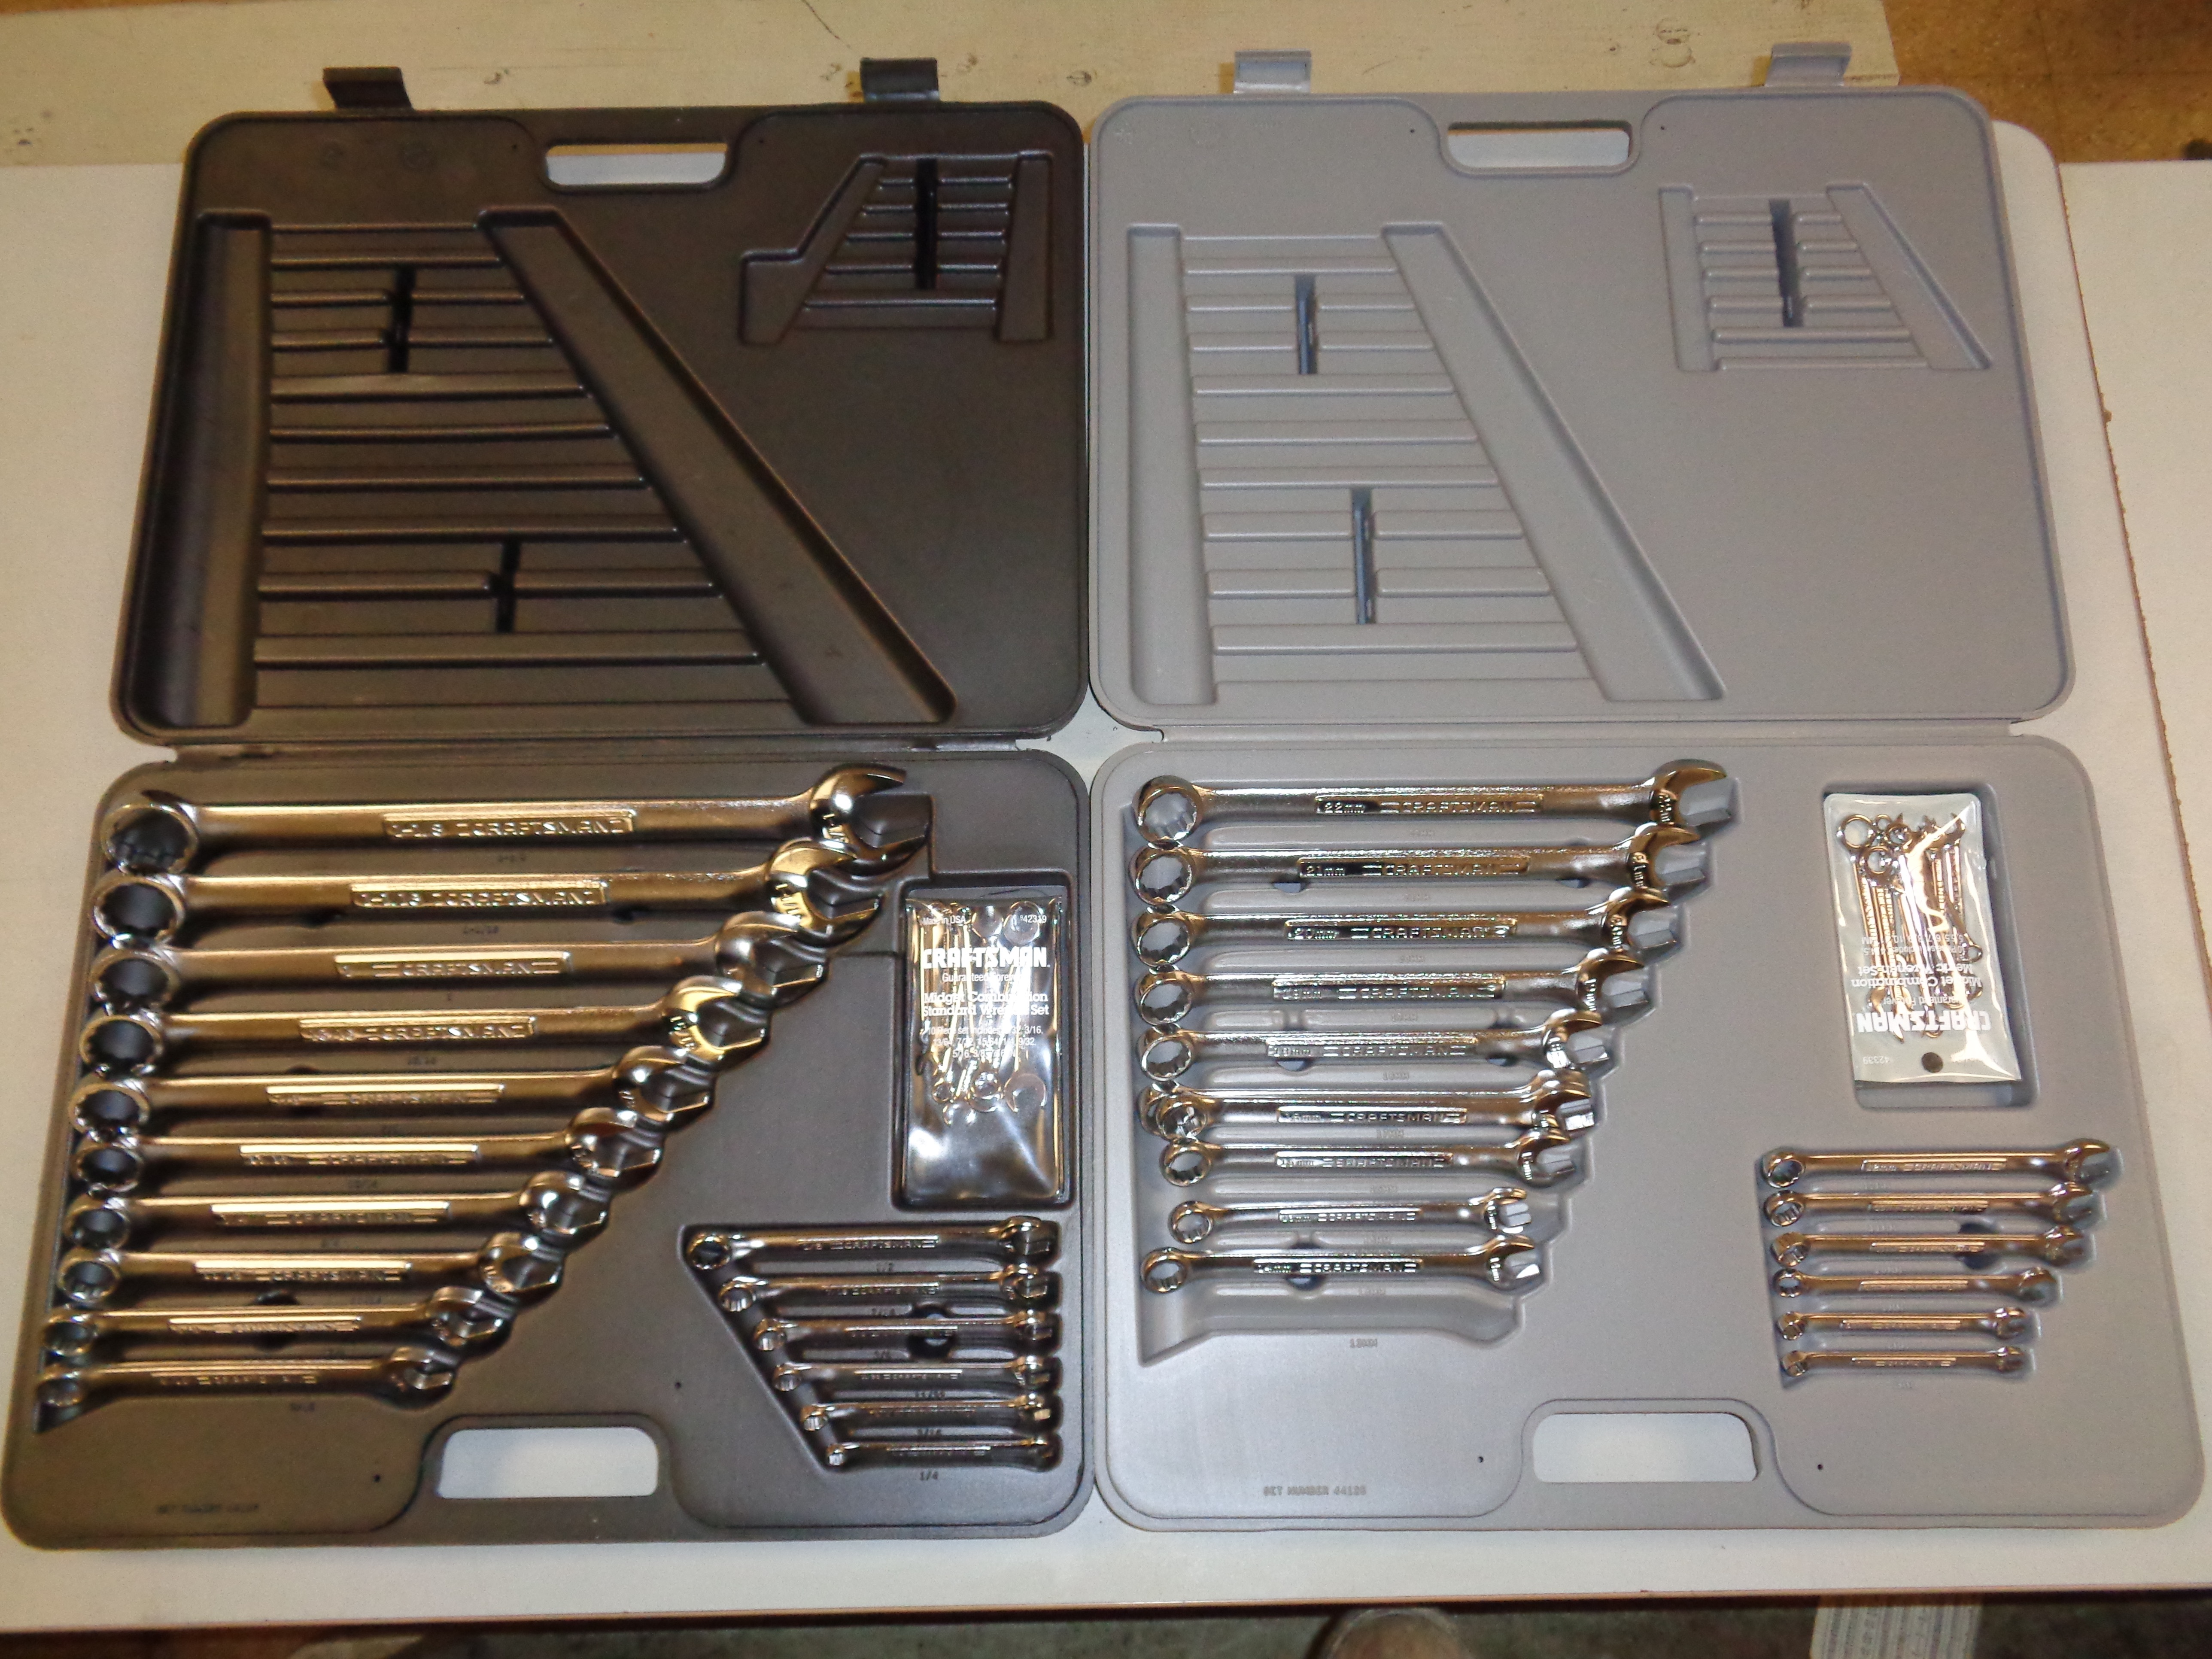 Lot 9 - Set of 2 Craftsman 26 Piece Wrench Sets - Metric and Standard